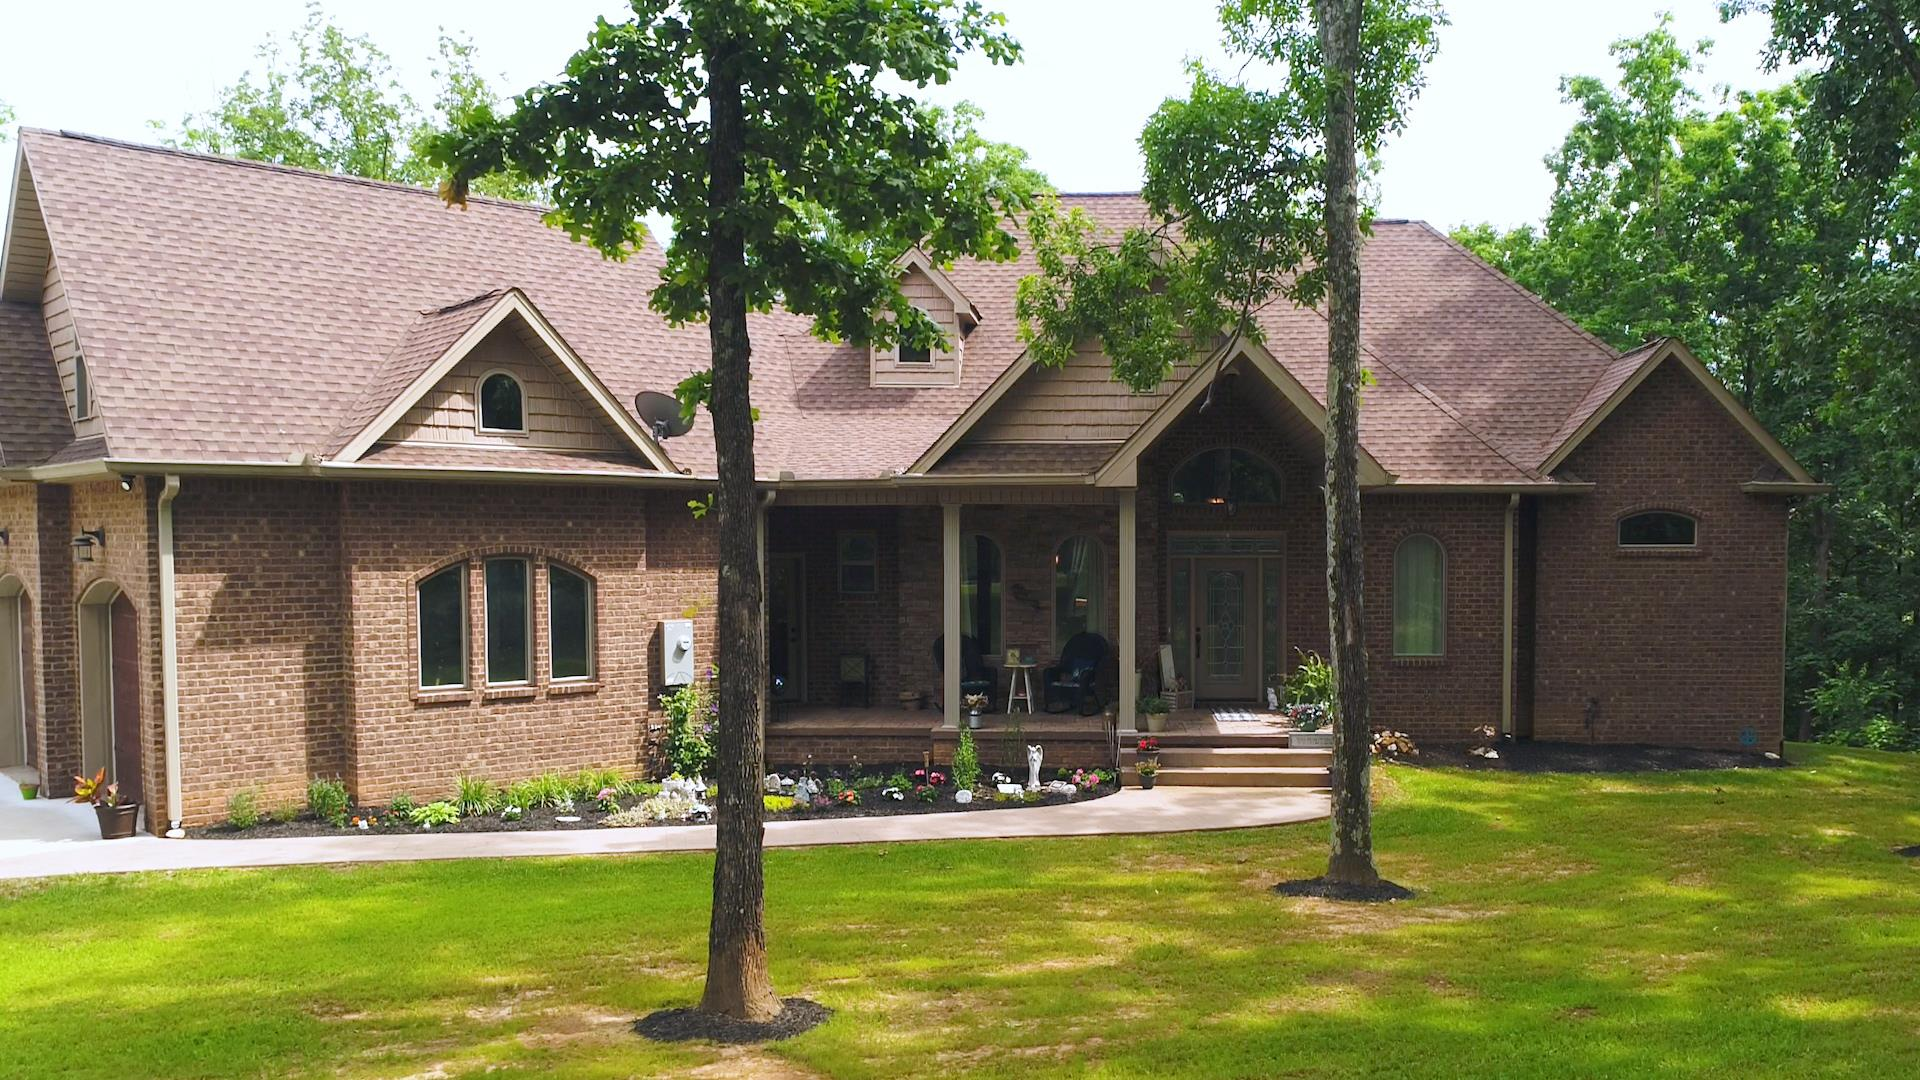 170 Indian Trl, MC EWEN, TN 37101 - MC EWEN, TN real estate listing